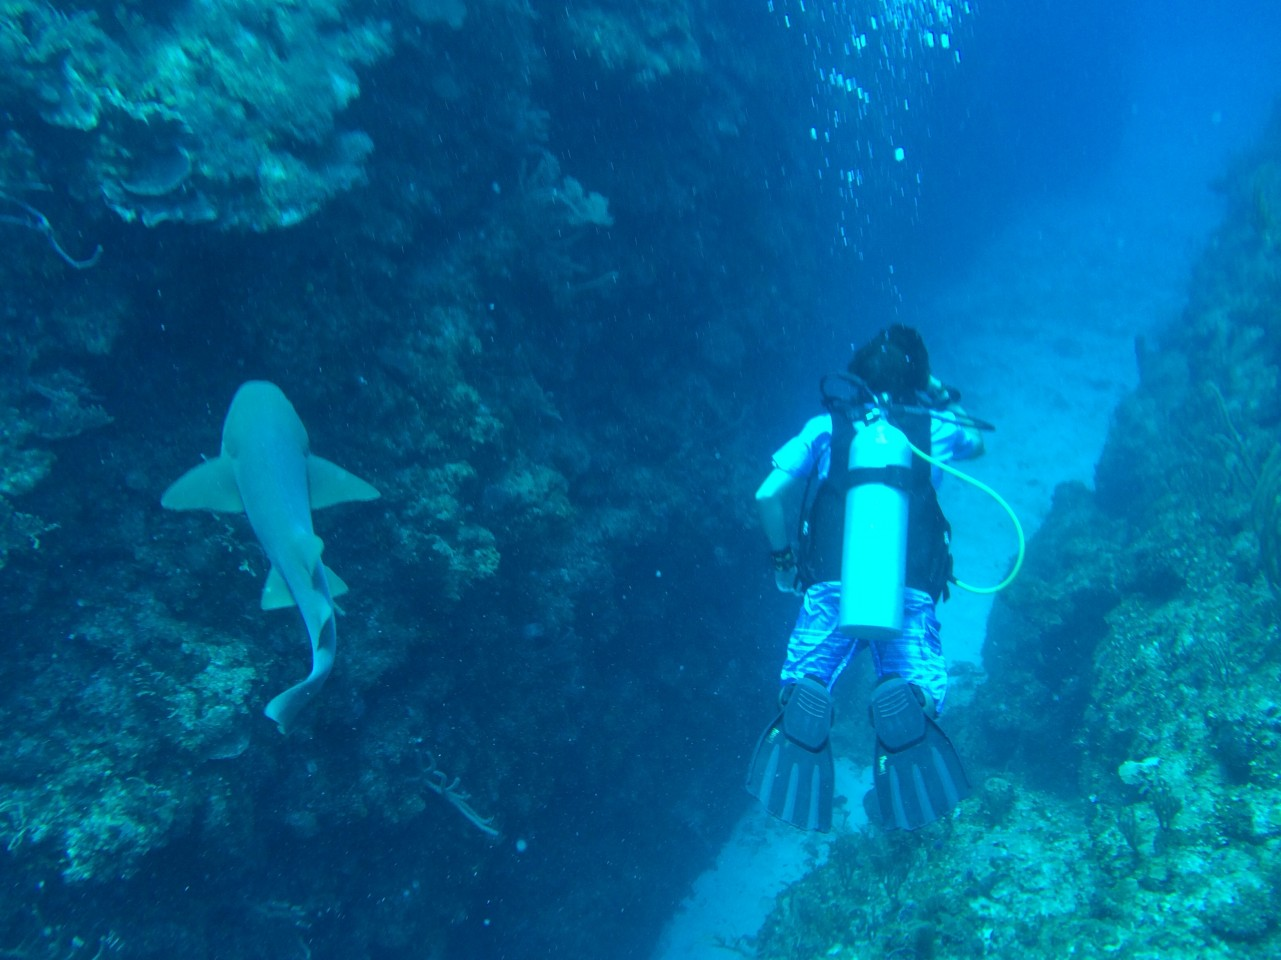 Nurse Shark - Ambergris Caye, Belize